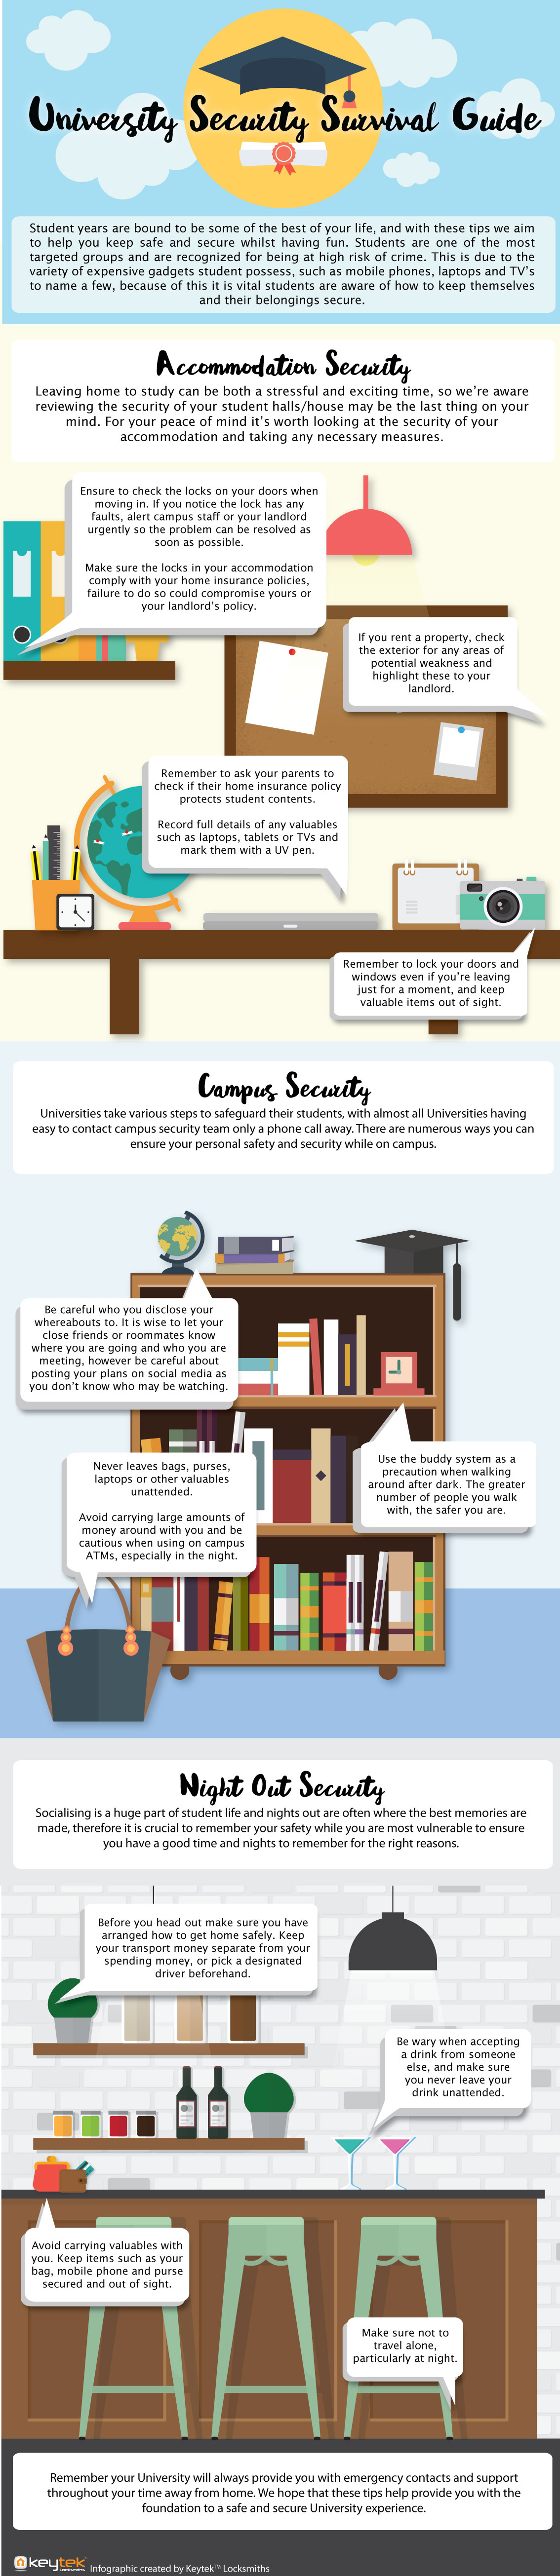 University Student Security Guide